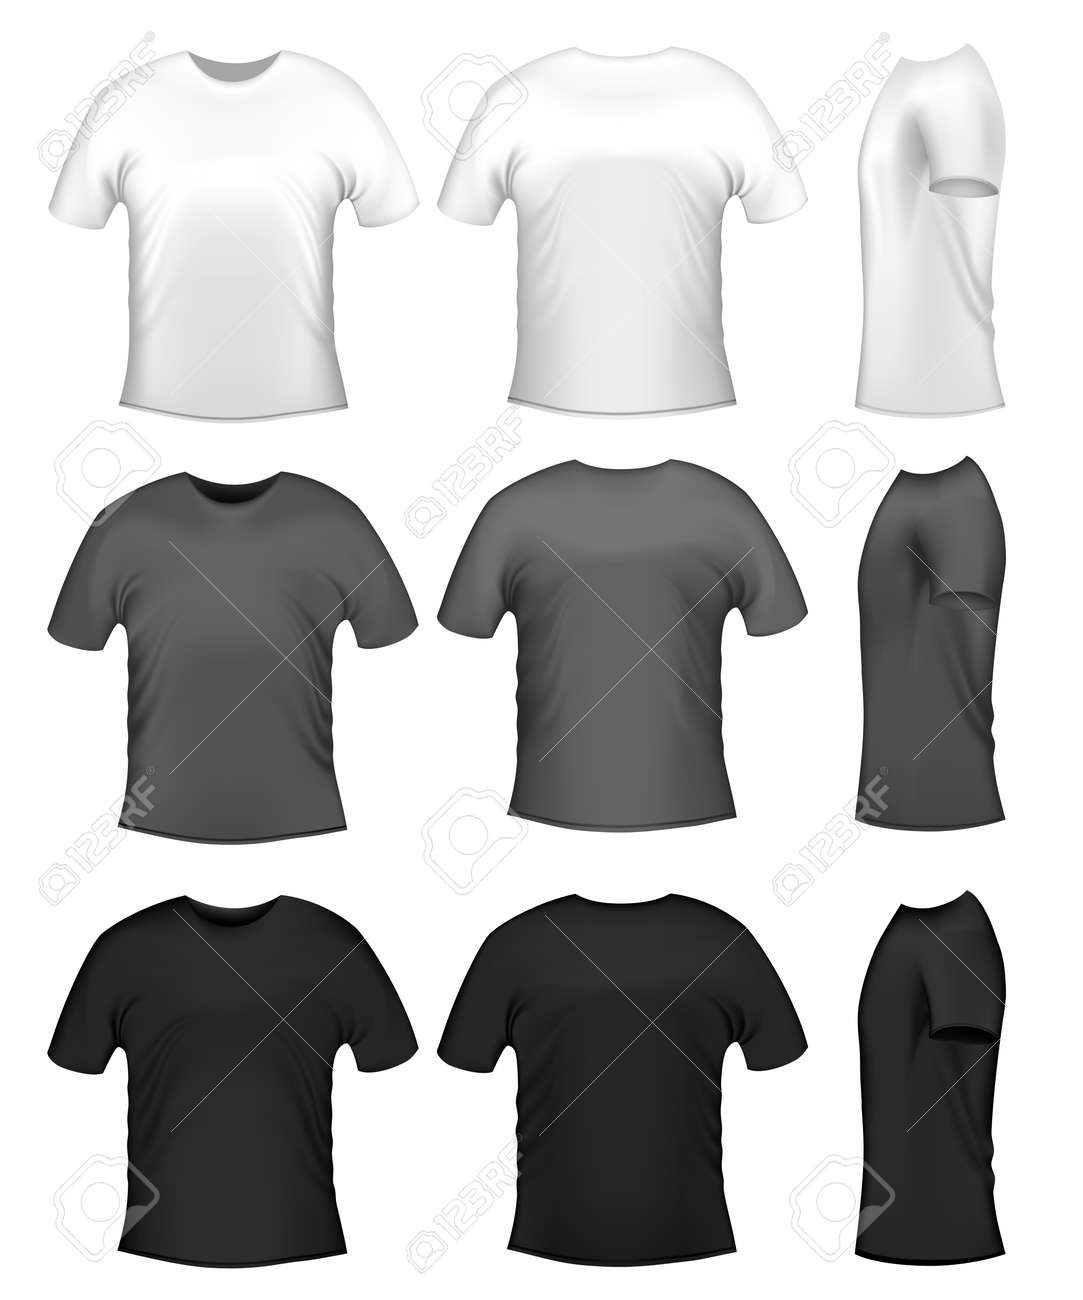 Black t shirt layout -  Black T Shirt Template Hd Men S T Shits Collection Of Download